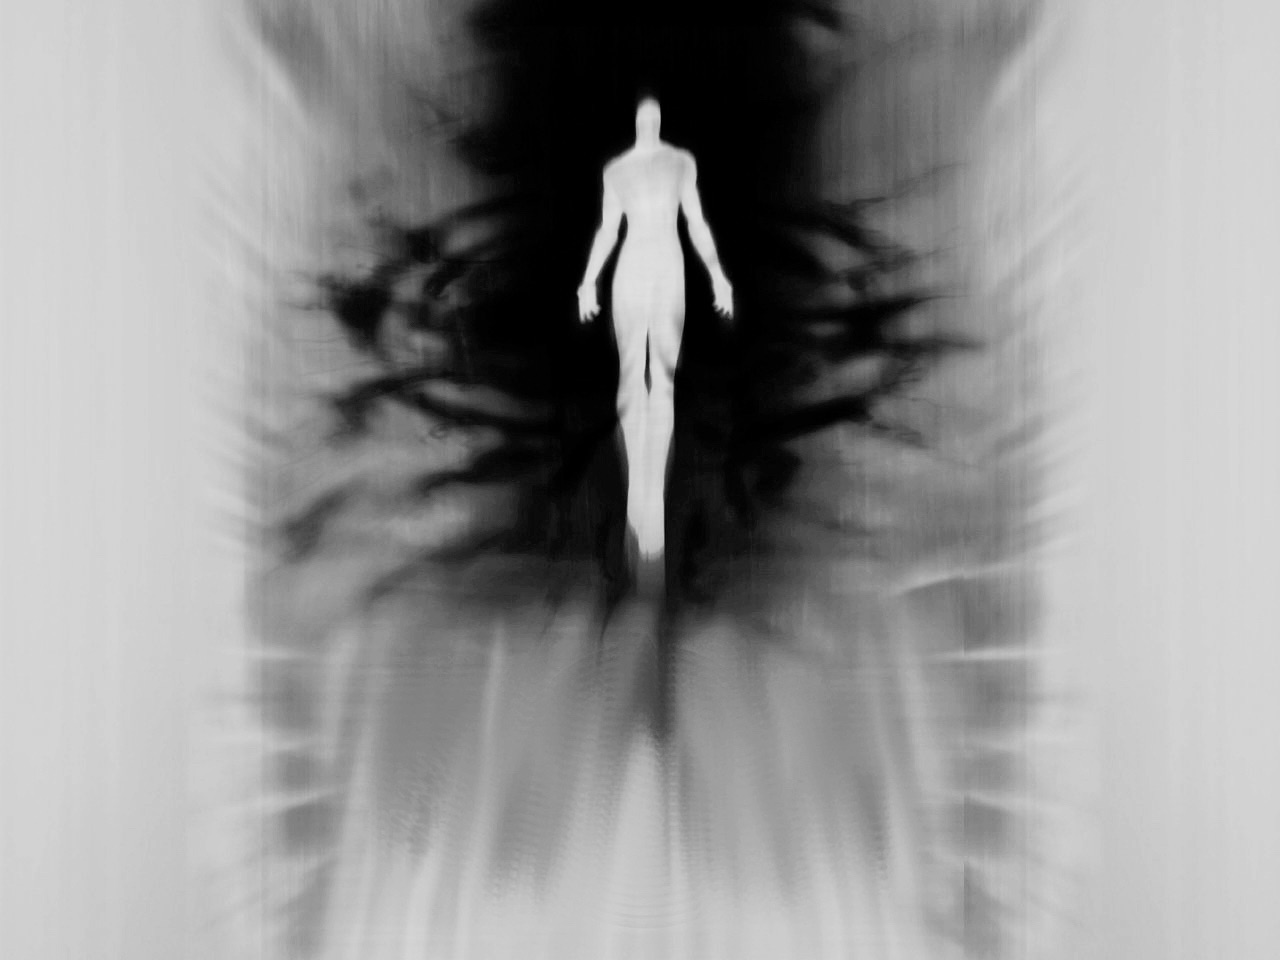 ghosts the unsolved science mystery of the spirit realm White lady ghosts - female spirit who is supposed to have died or mystery of the bermuda triangle - science fiction or ghost mother (unsolved mysteries.